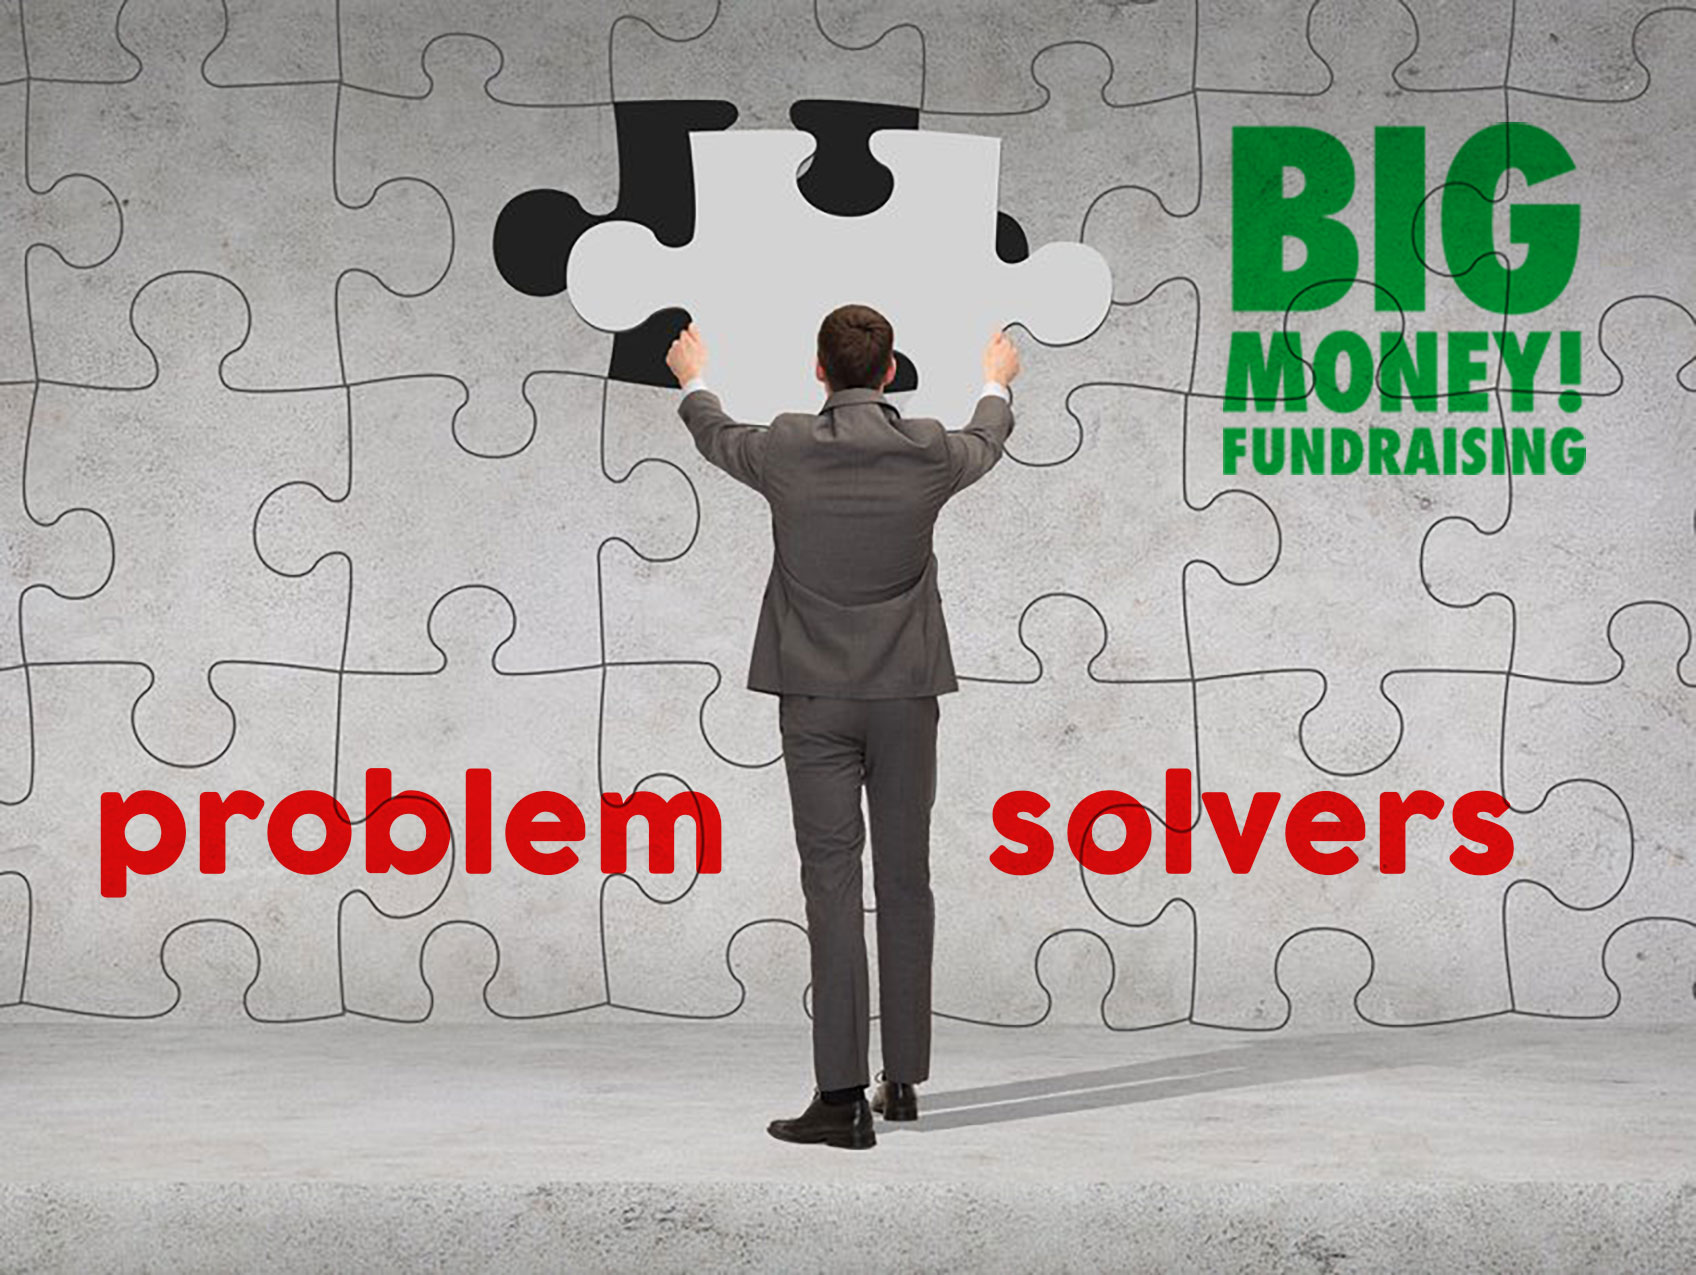 Big Money Fundraising big problem solvers